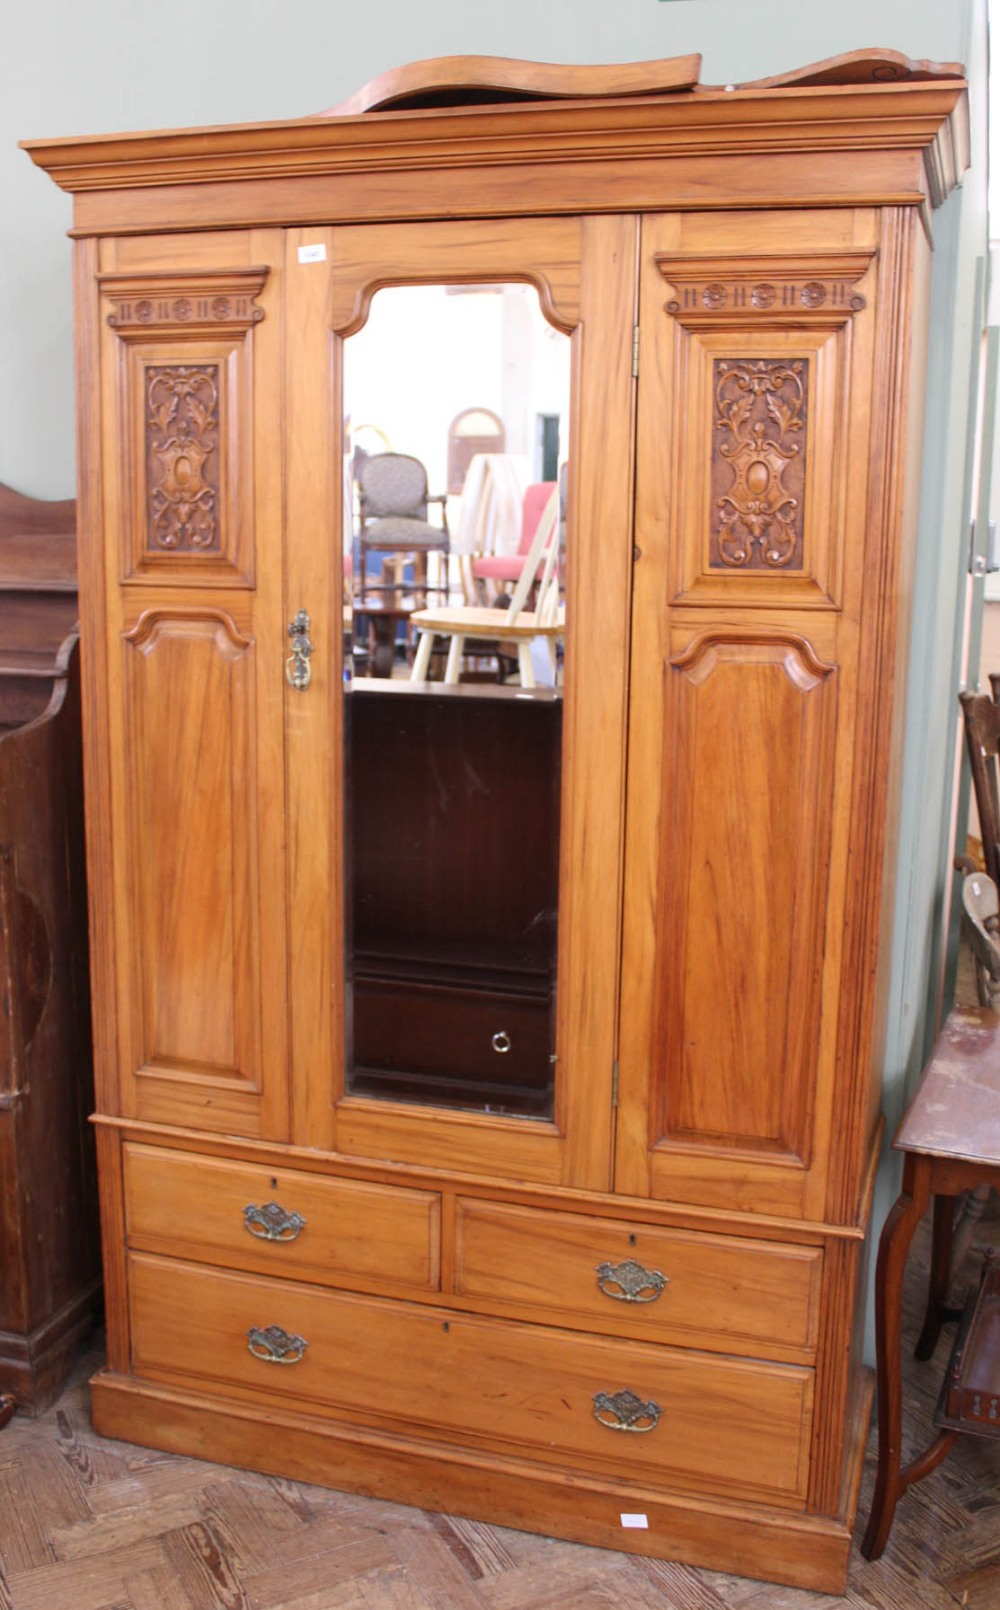 Lot 1040 - An Edwardian satinwood carved double wardrobe with three drawers below